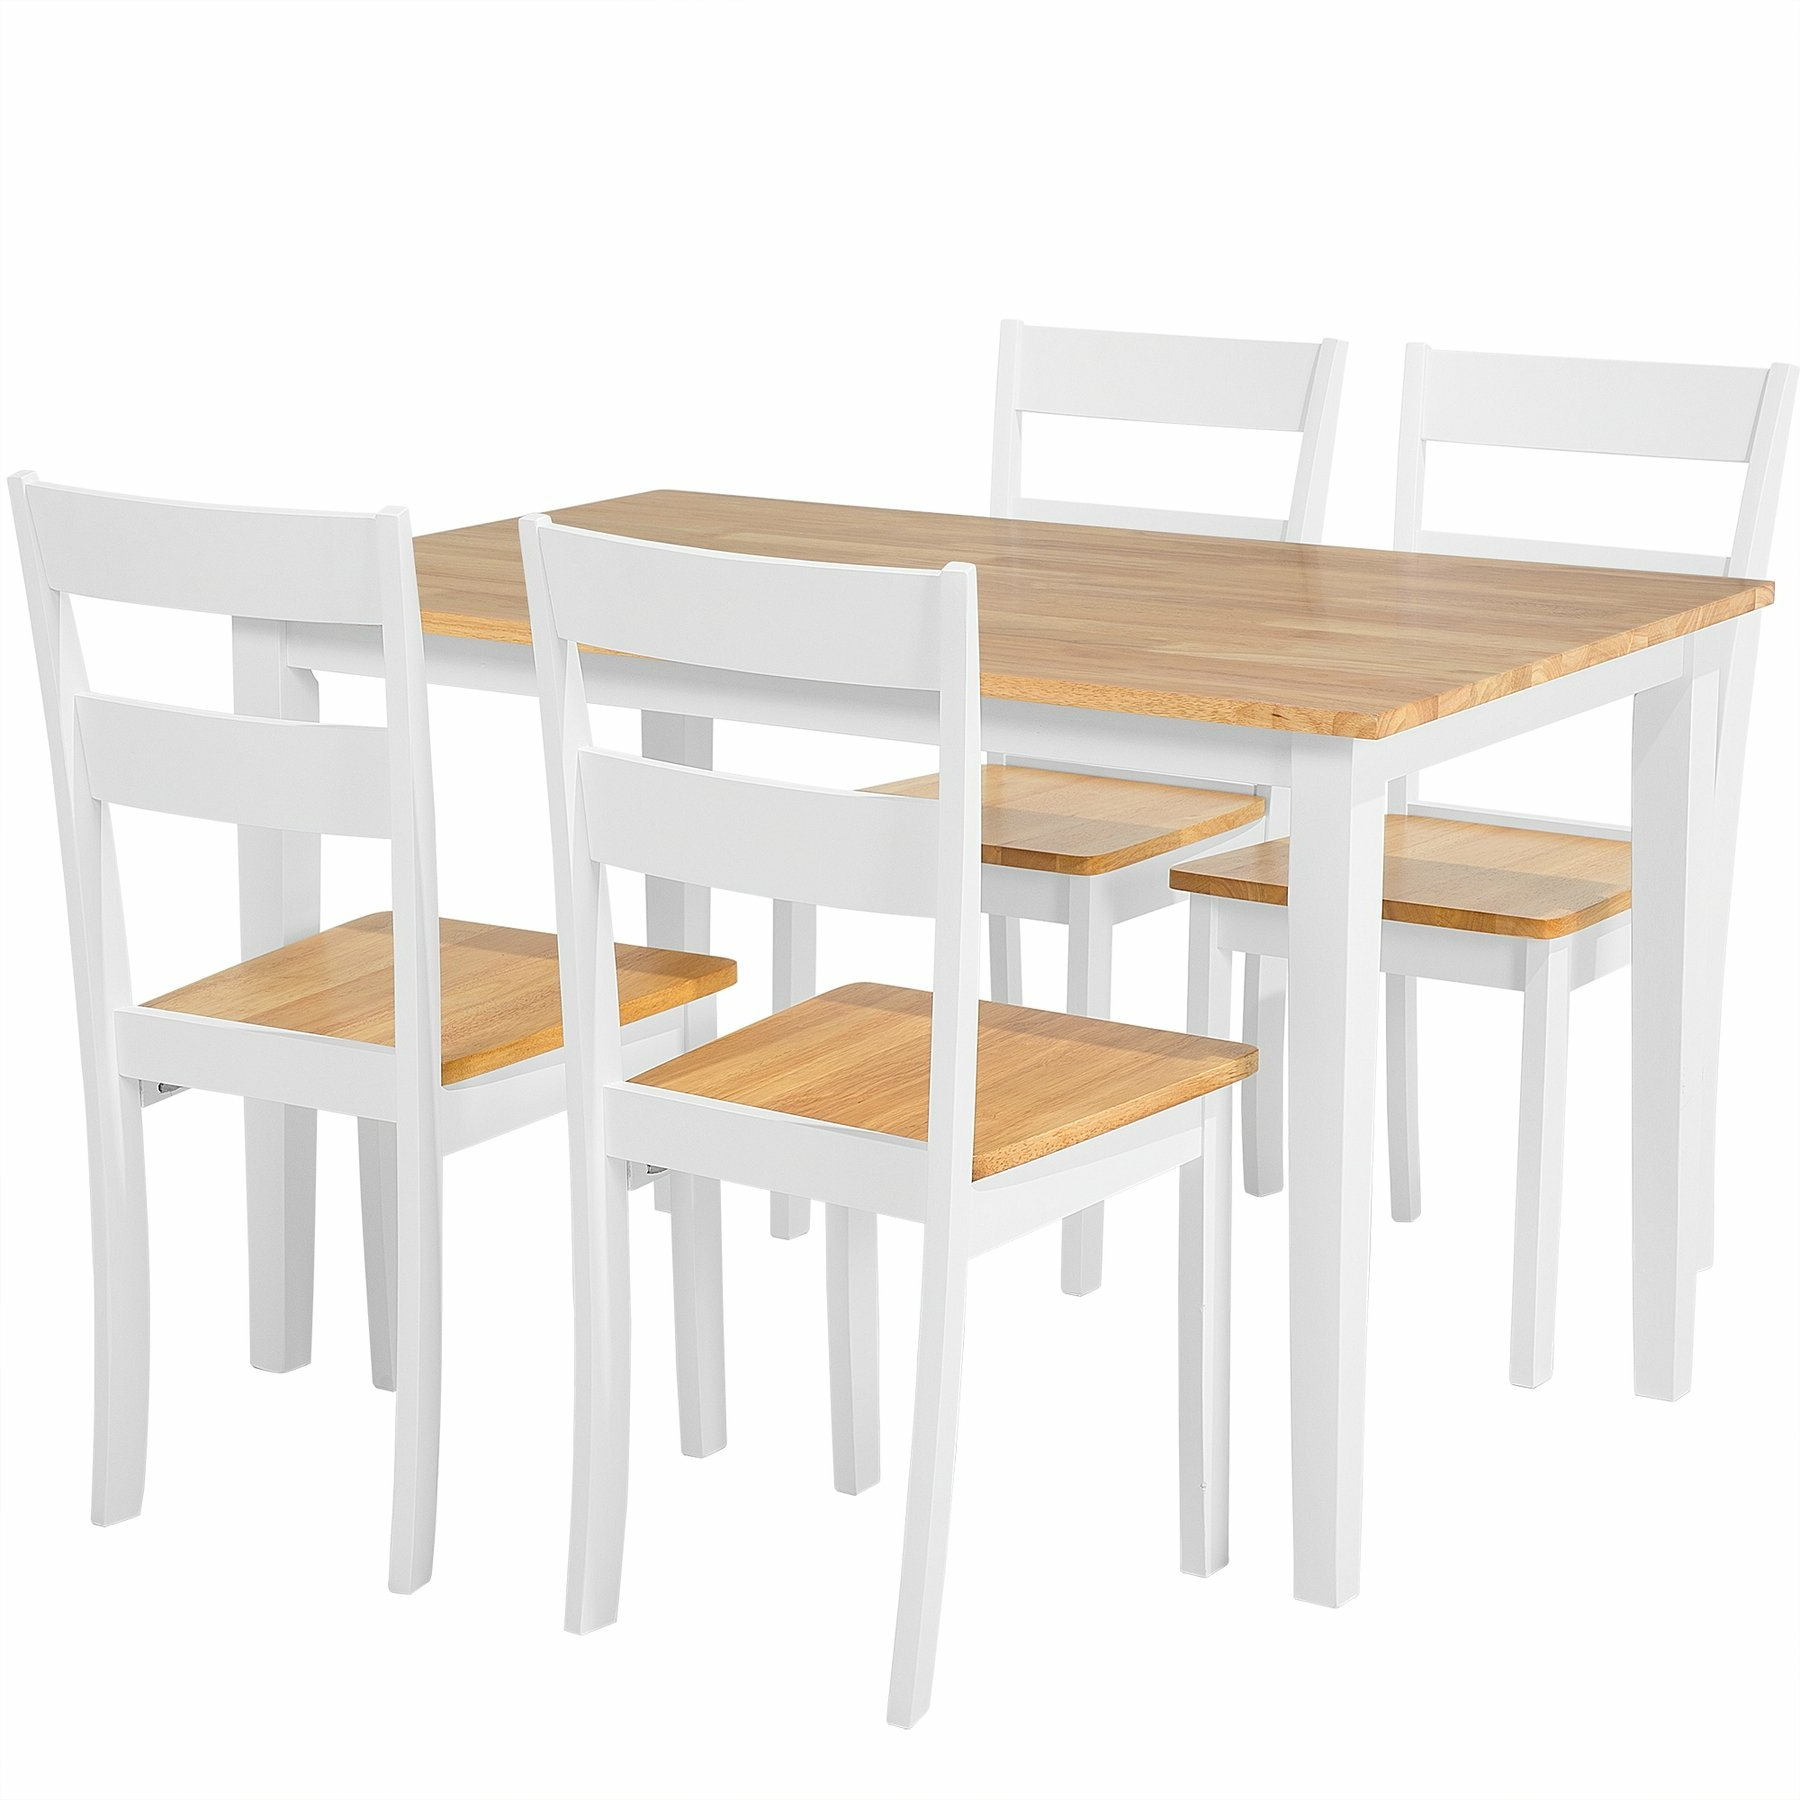 Seabrook 5 Piece Solid Wood Dining Set Inside Famous Yedinak 5 Piece Solid Wood Dining Sets (View 13 of 20)